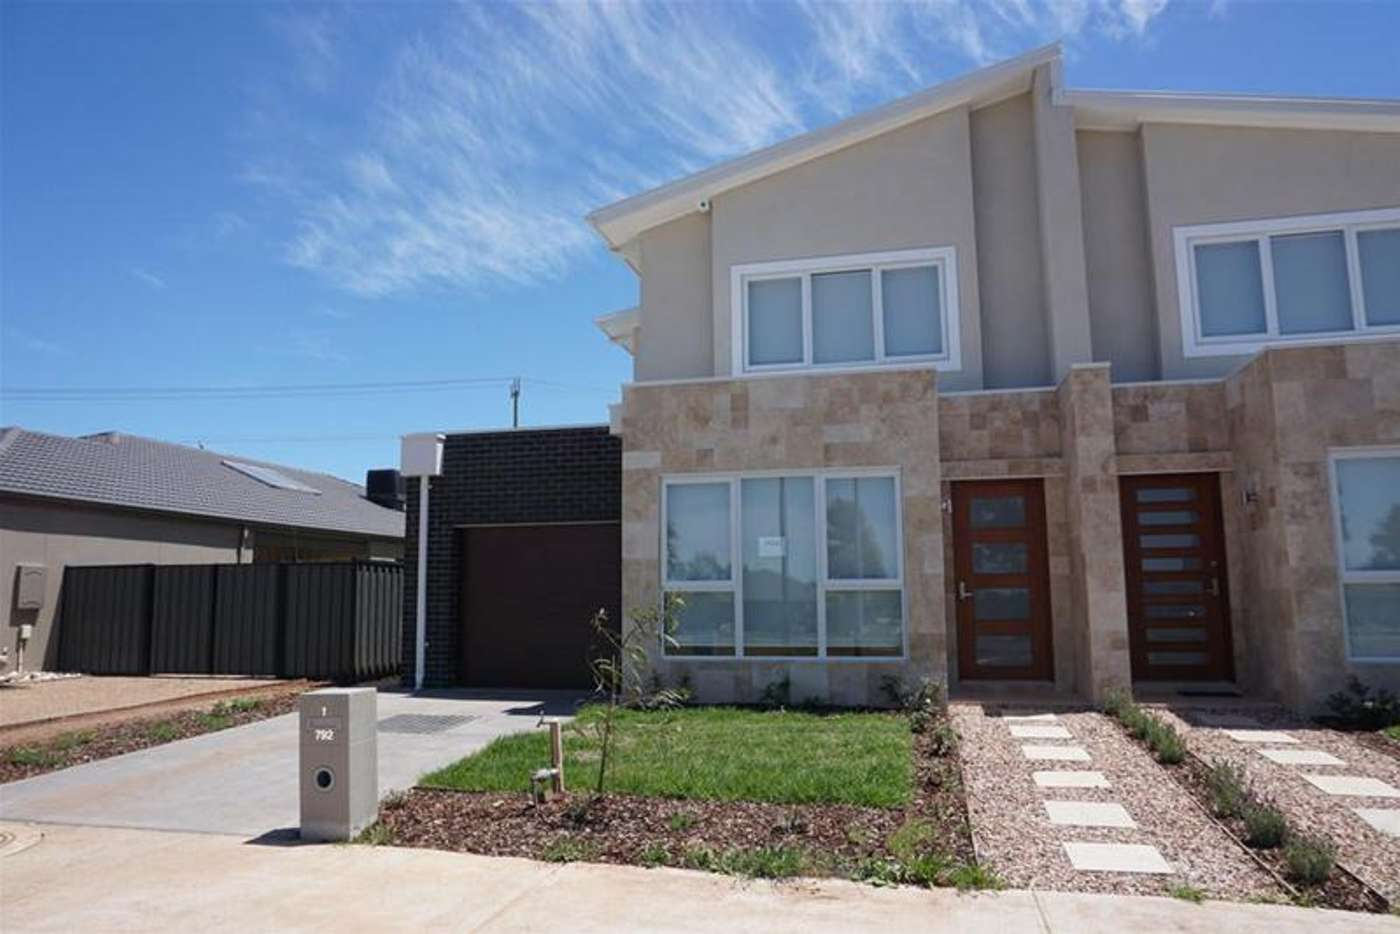 Main view of Homely house listing, 792 A Tarneit Road, Tarneit VIC 3029